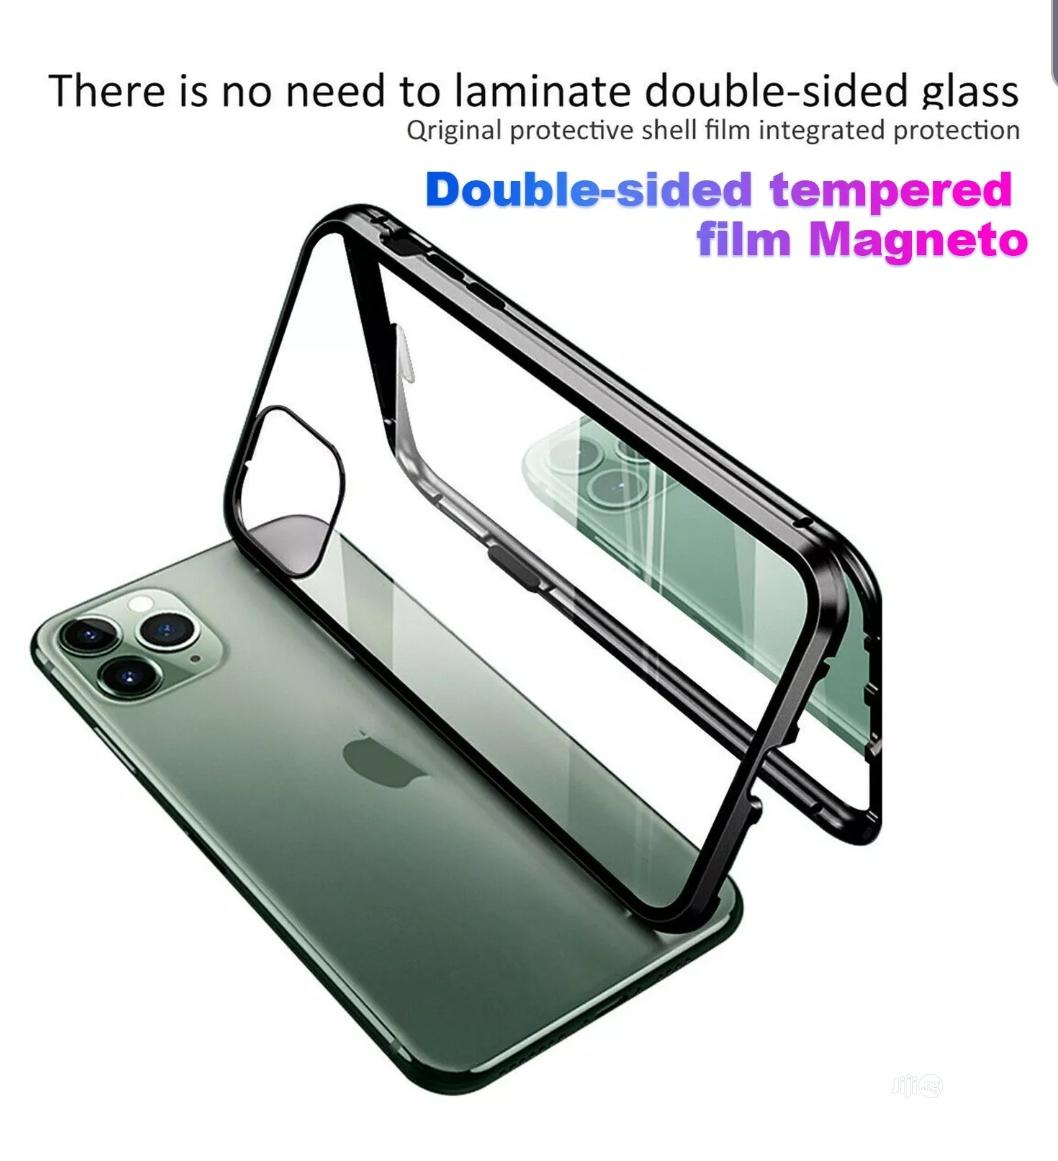 Magnetic Absorption Case for iPhone 12/12pro/Pro Max